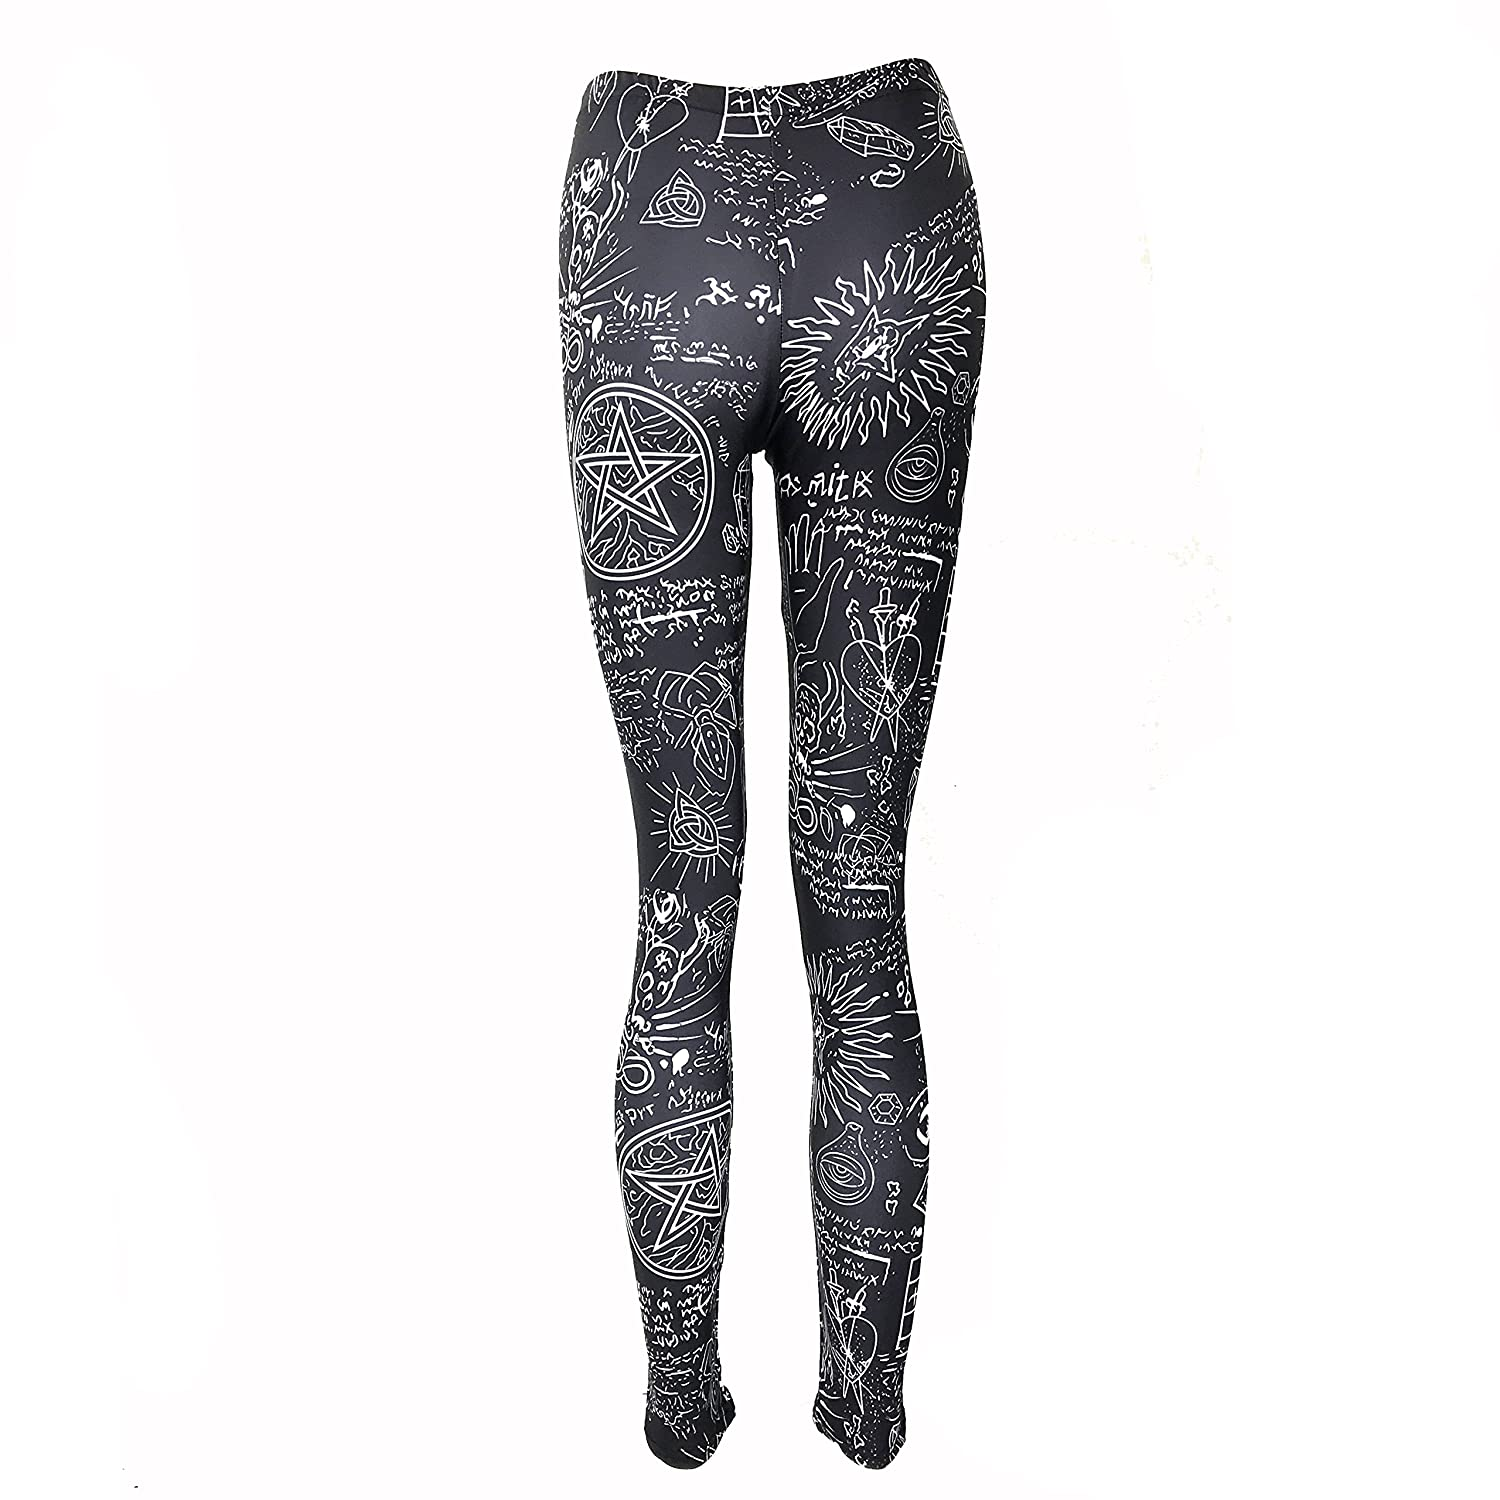 563fc20349da8 EPLAZA Womens Stretchy Leggings 3D Print Jeggings Tight (geometric  pattern): Amazon.ca: Luggage & Bags